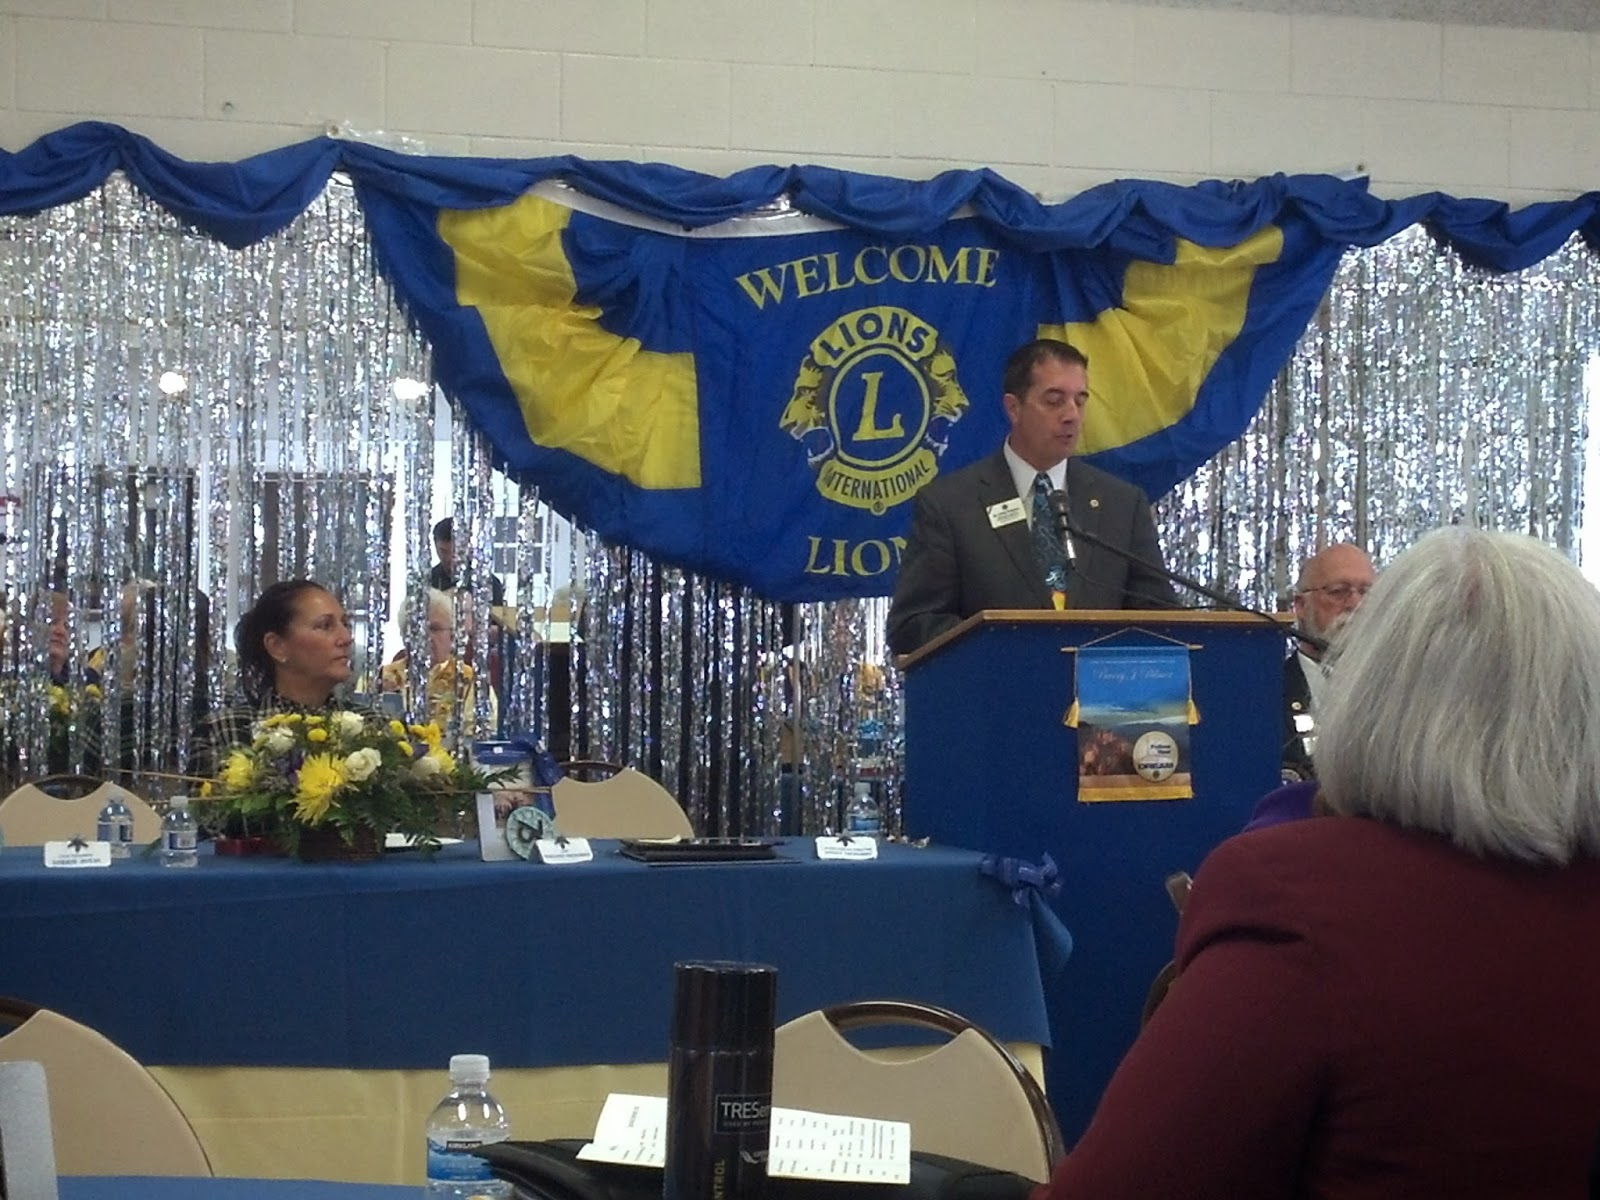 how to become a member of lions club